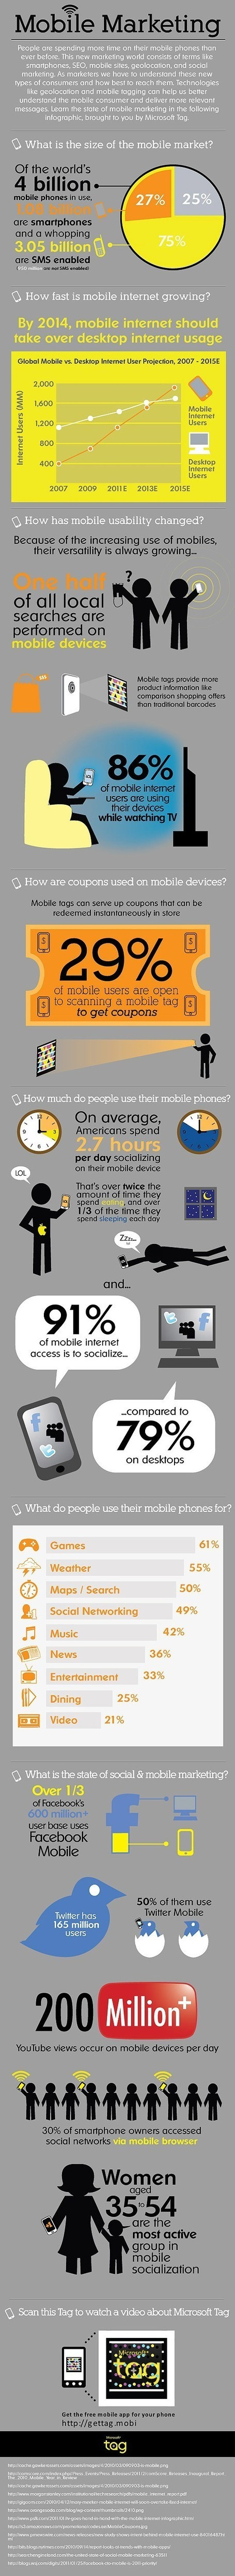 The Mobile Social Audience is Evolving - Here's What's Happening [Infographic] | A 360° Perspective of Communications, Strategy, Technology and Advertising | Scoop.it